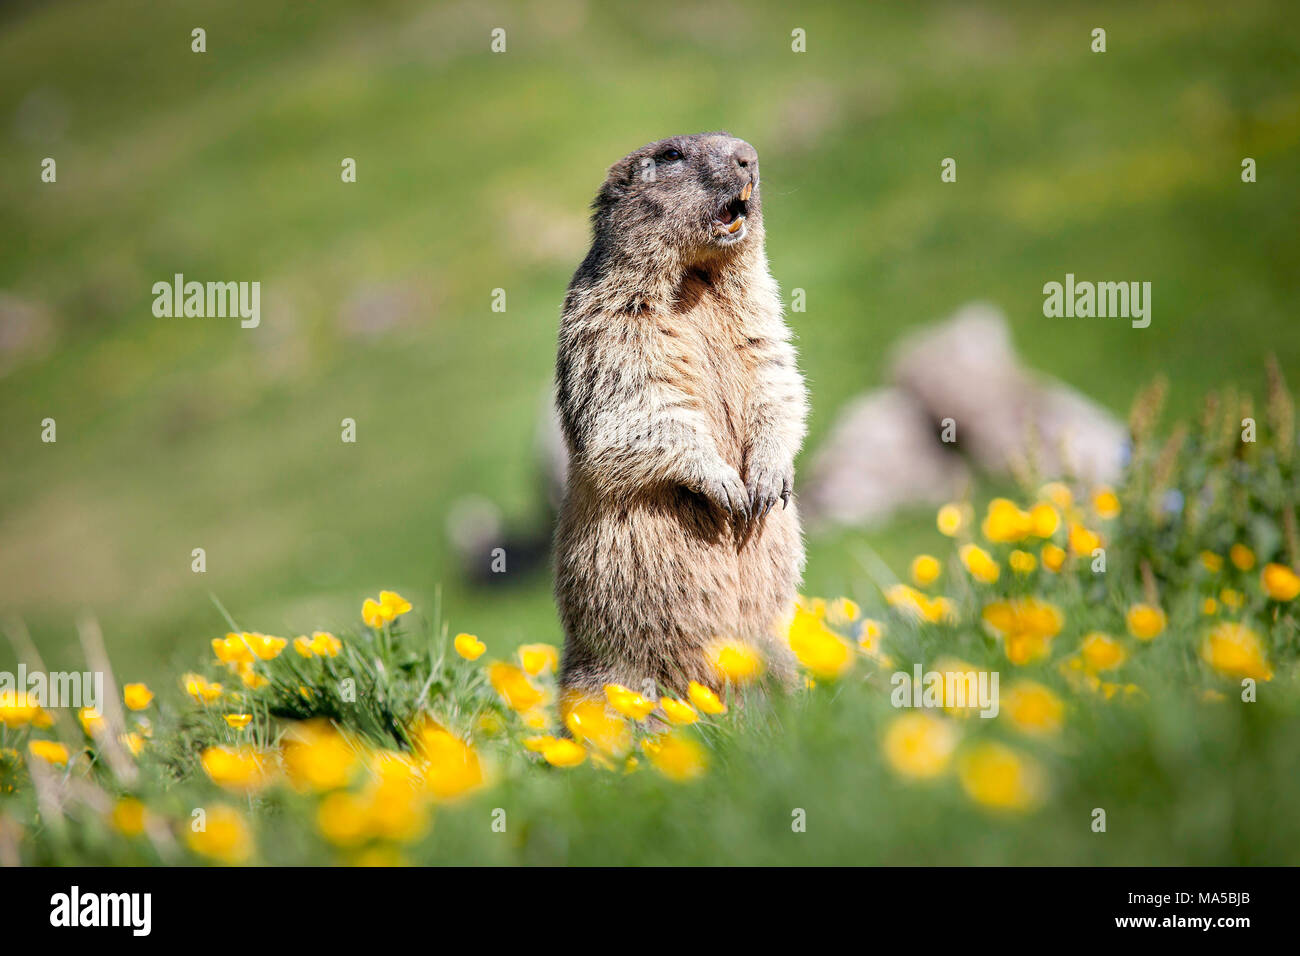 whistling marmot in the Taubenstein area whistling animals to warn fellows of danger - Stock Image